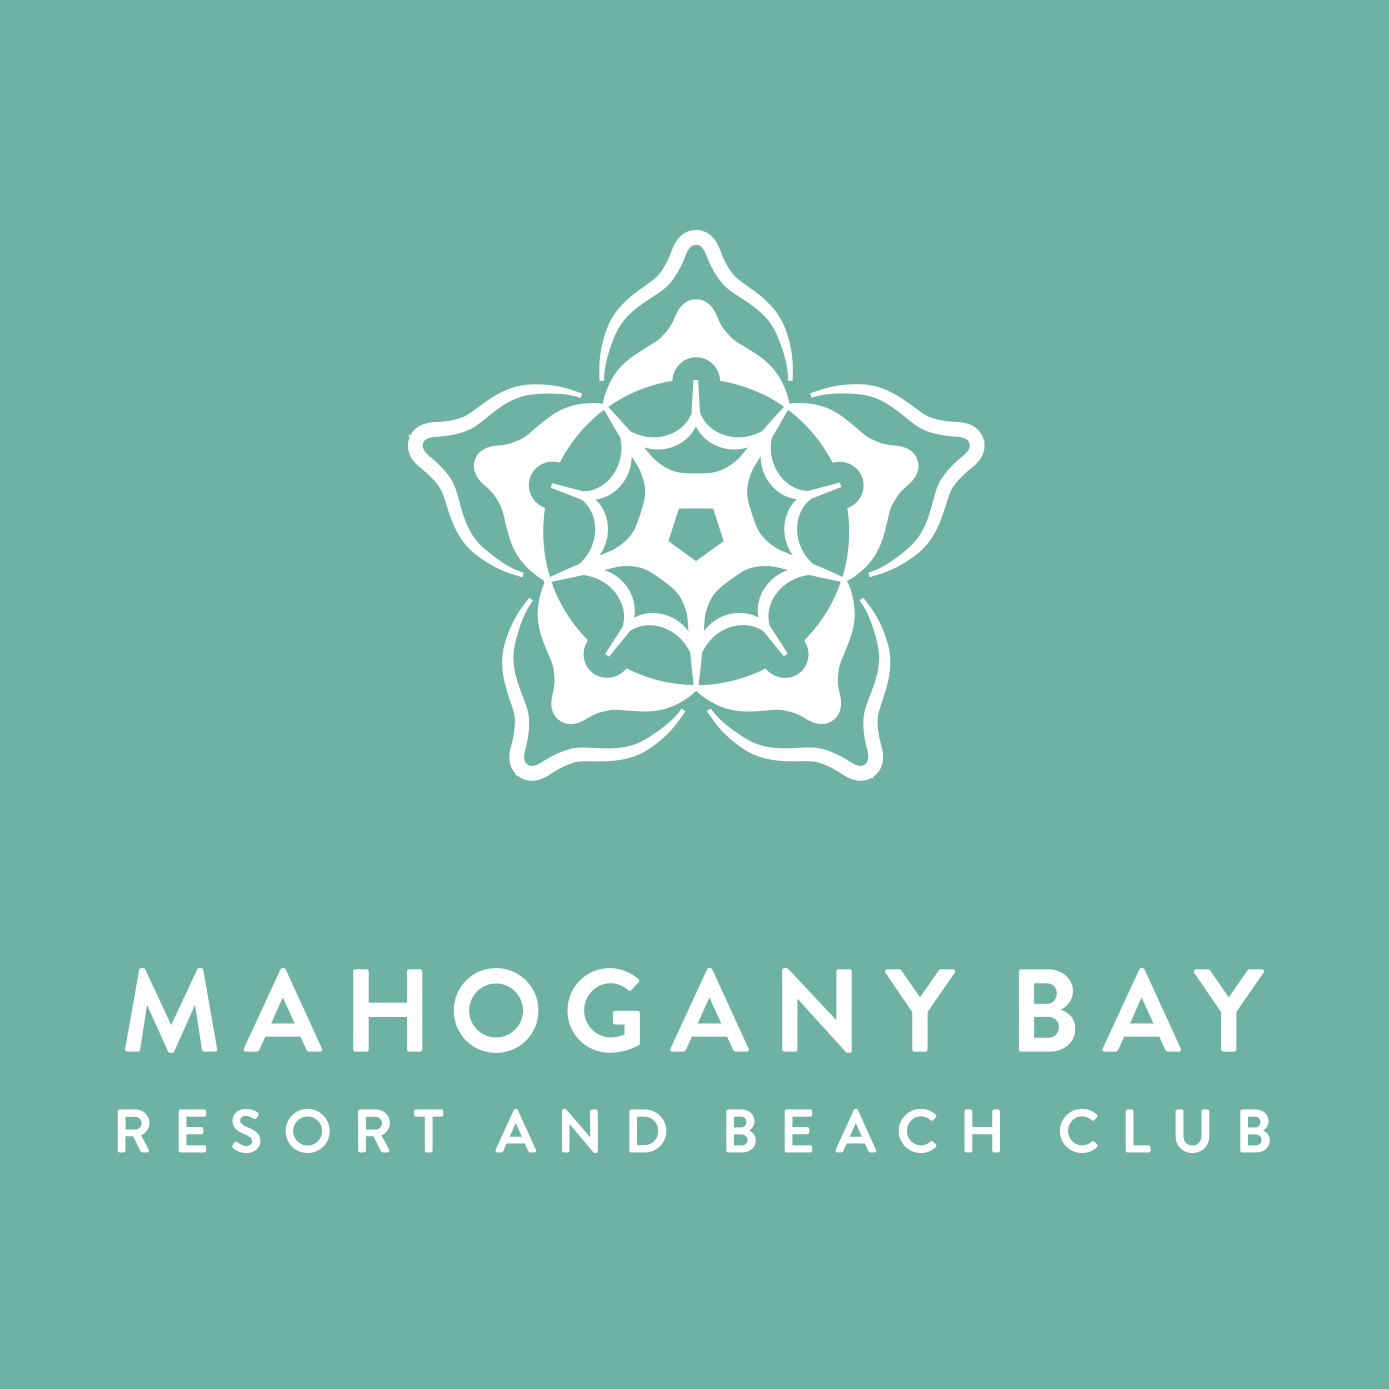 Mahogany Bay Resort & Beach Club